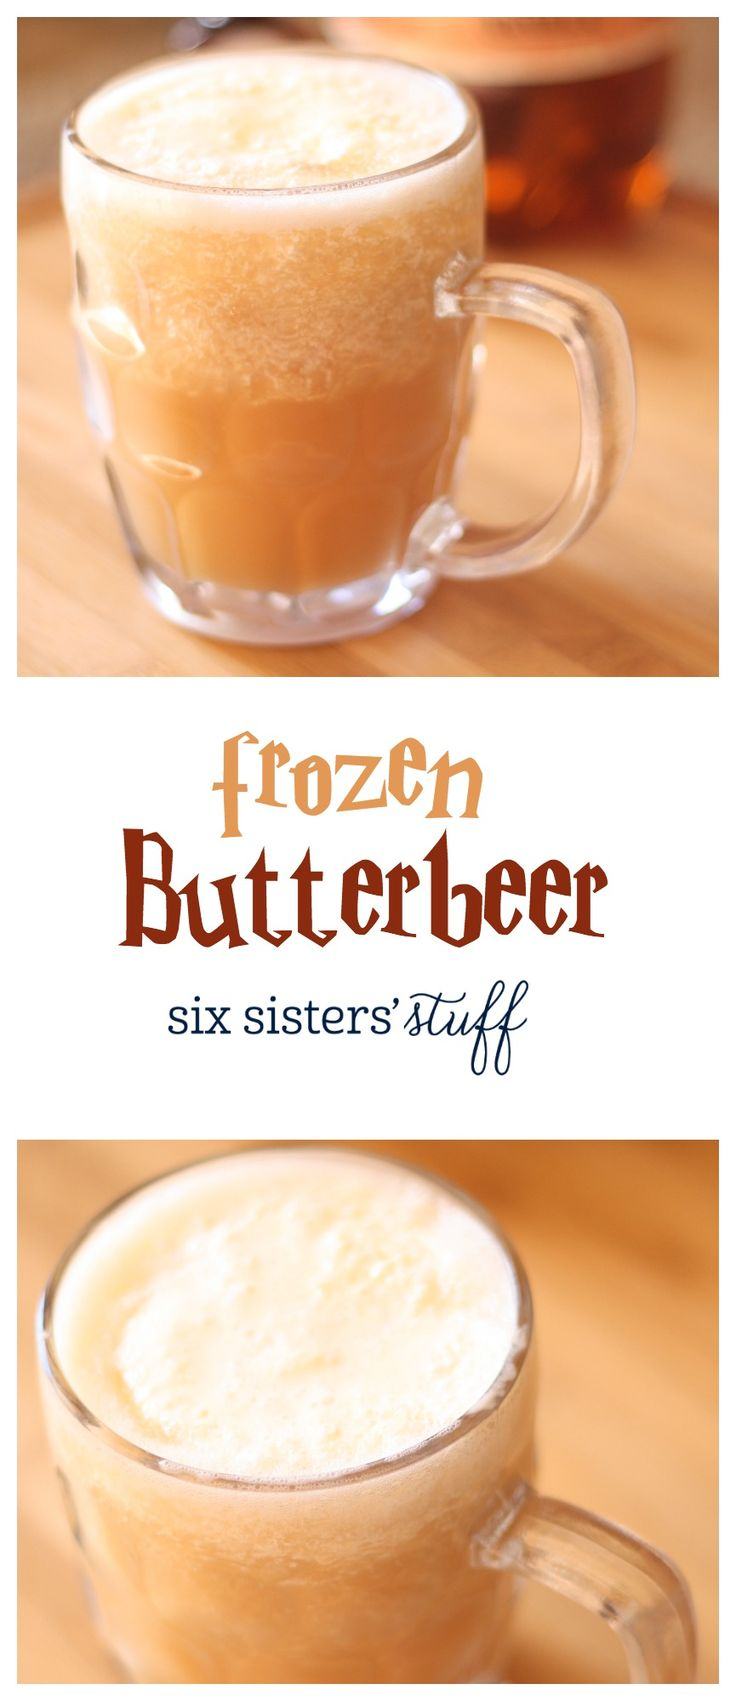 Frozen Butter Beer | Recipe | Harry Potter | Butterbeer ...